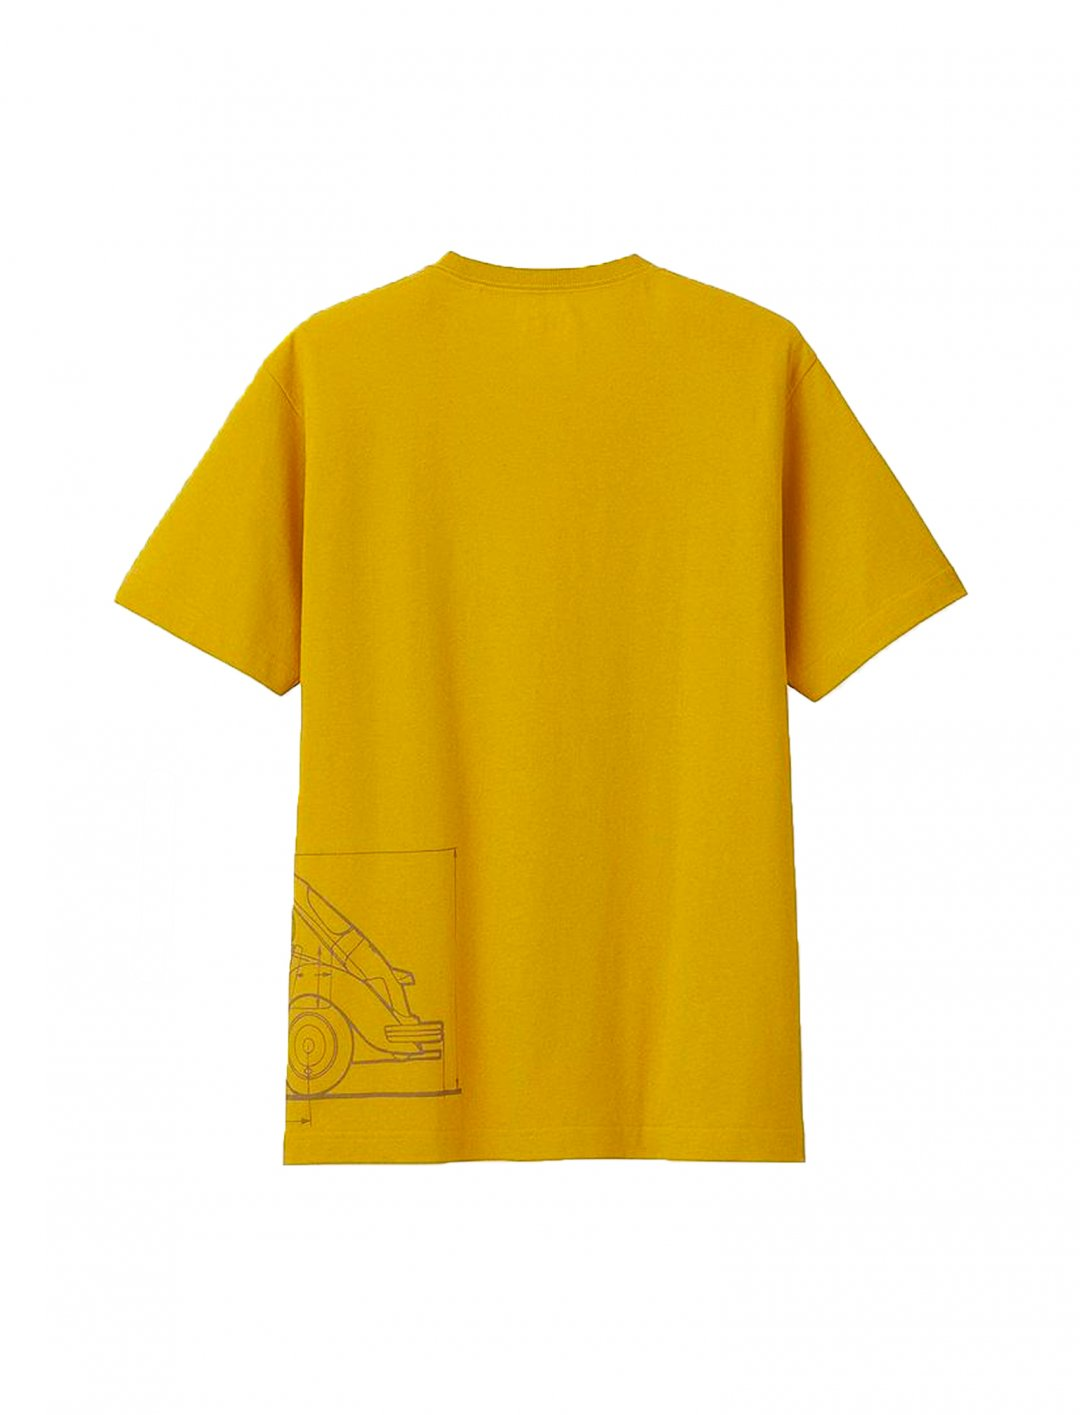 "Volkswagen Graphic Print T-shirt {""id"":5,""product_section_id"":1,""name"":""Clothing"",""order"":5} Uniqlo x Volkswagen"